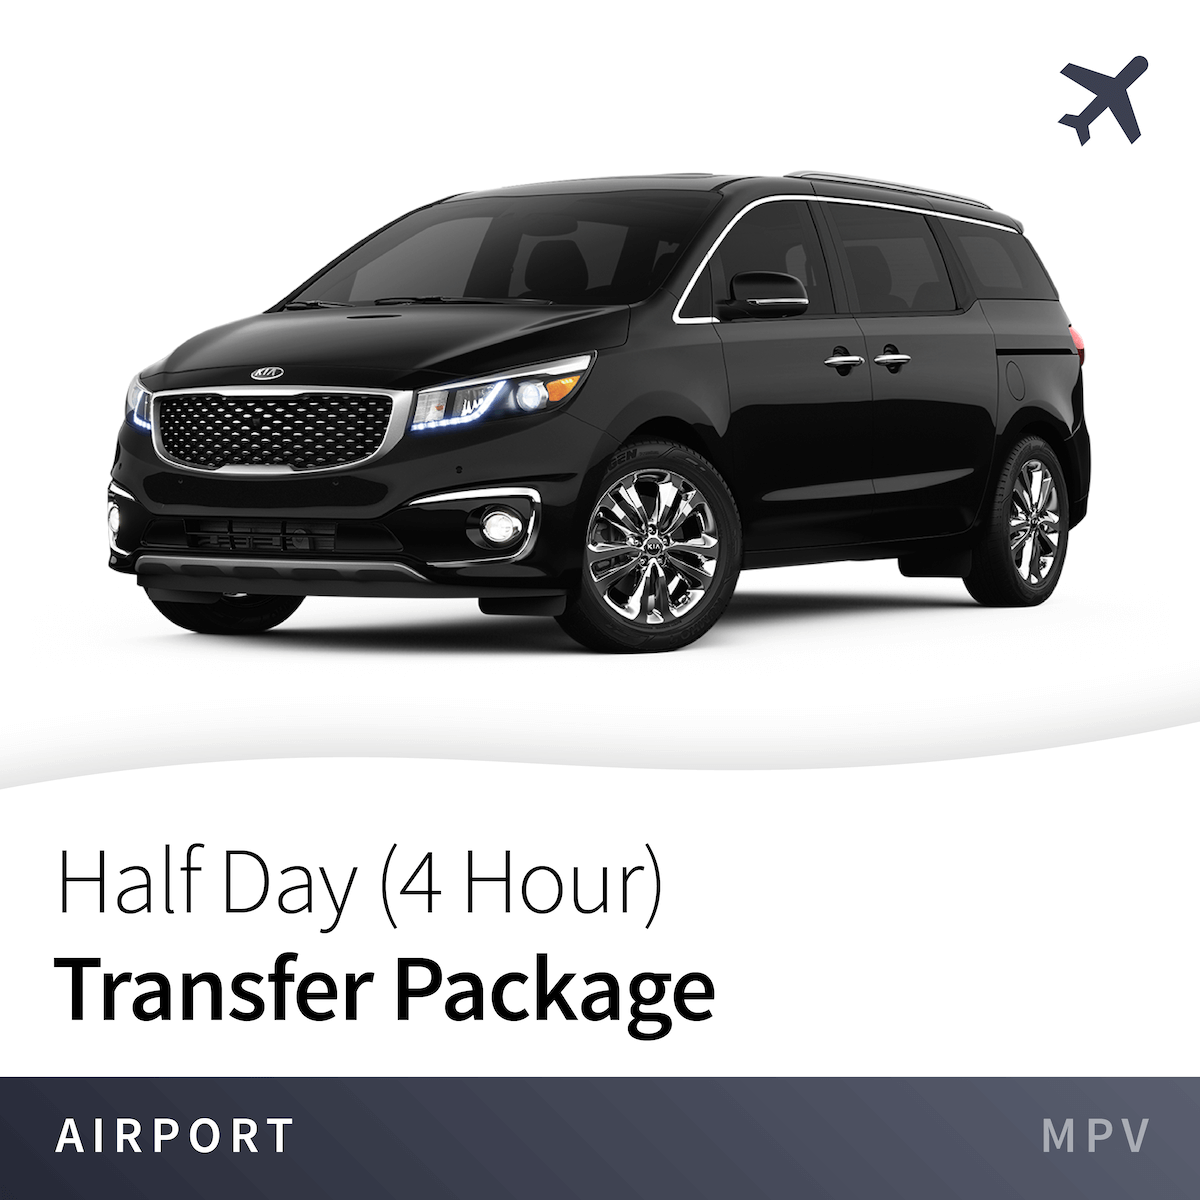 Half Day (4 Hour) Transfer Package From Airport - MPV 1